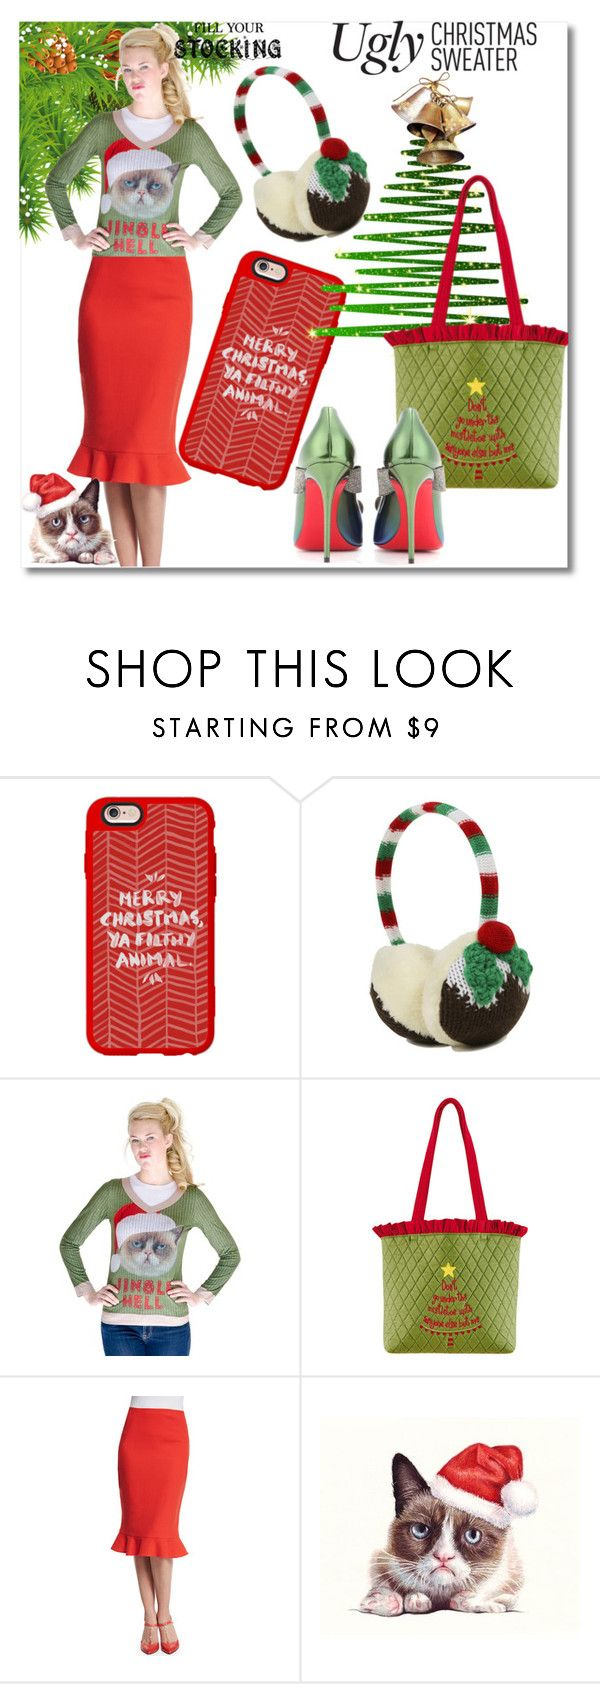 """Ugly Christmas Sweater / Grumpy Cat"" by emperormpf ❤ liked on Polyvore featuring Casetify, George, C & F, Oscar de la Renta and Christian Louboutin"